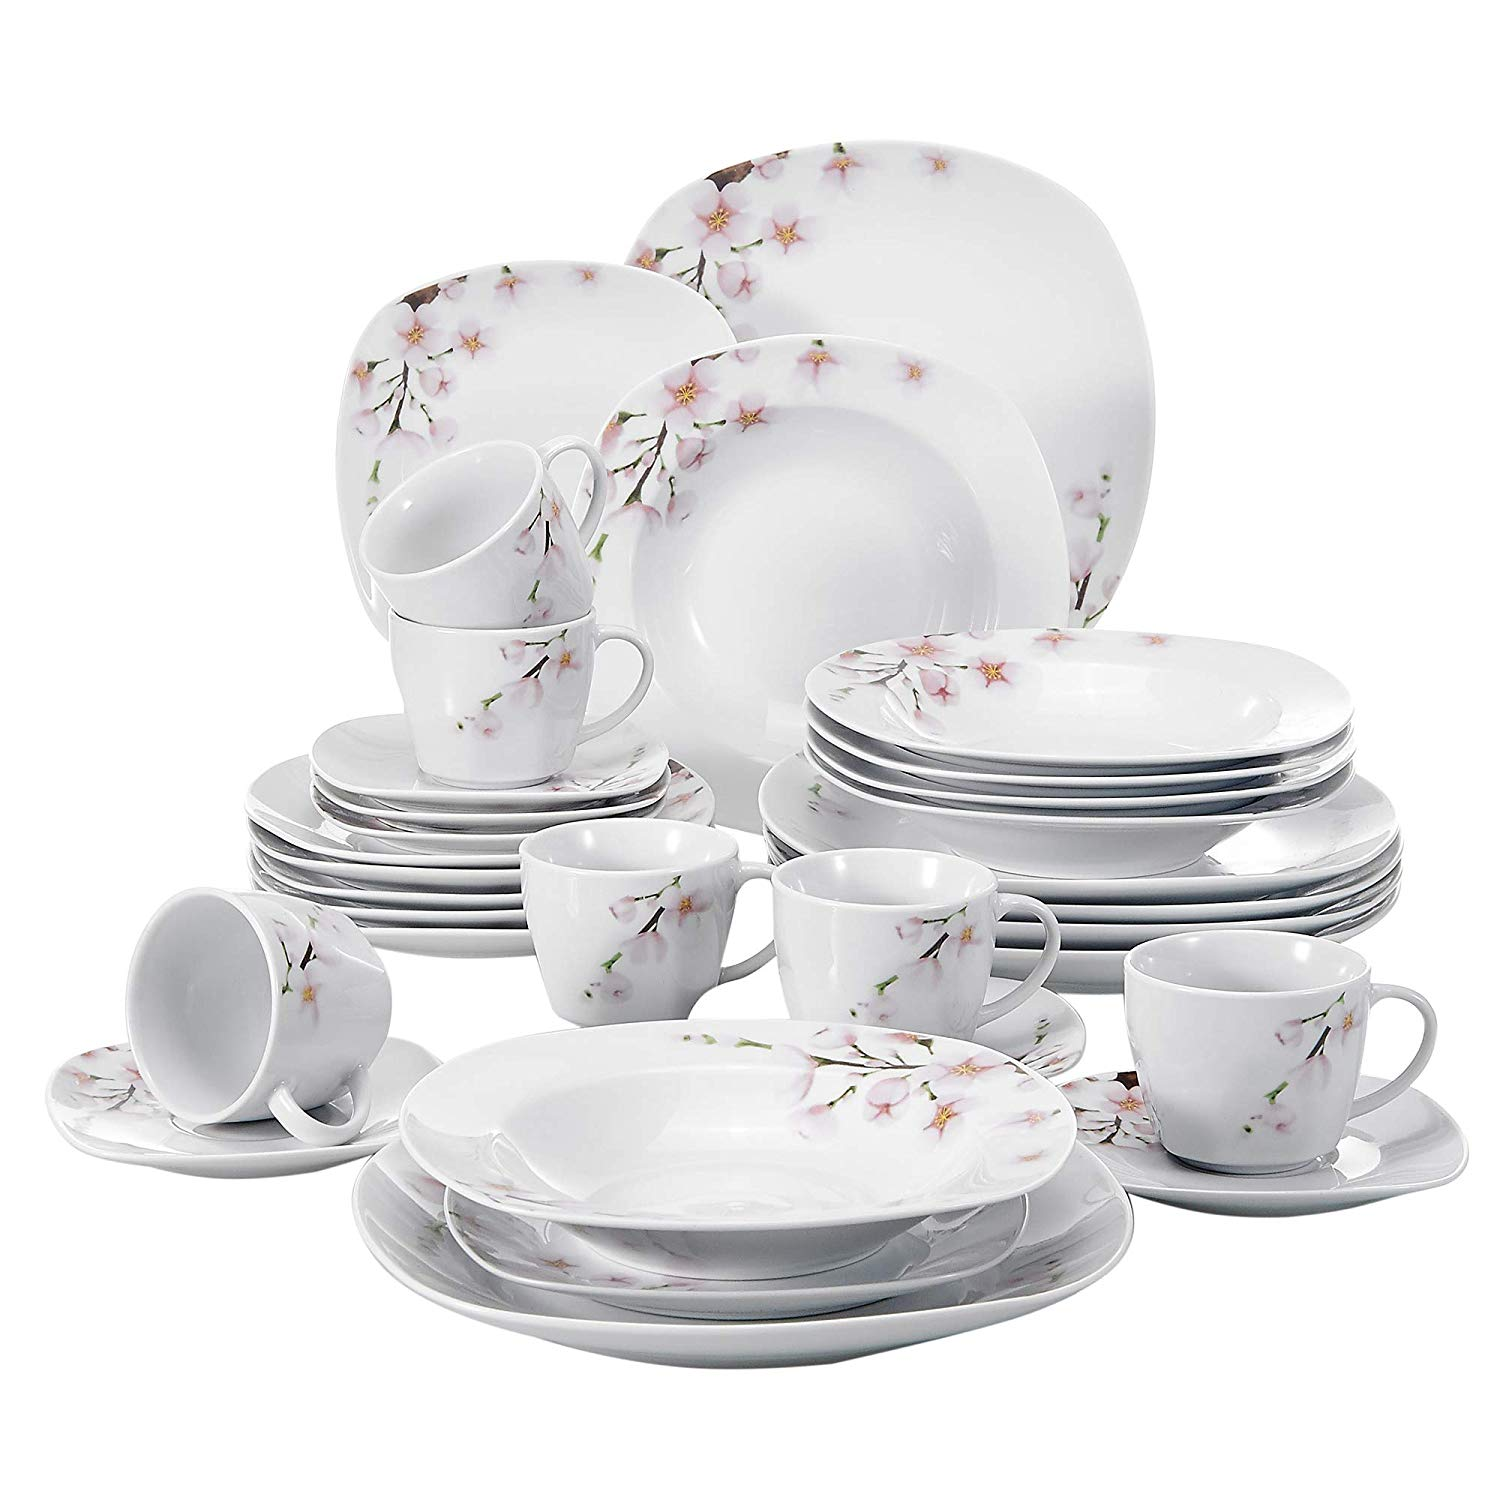 VEWEET ANNIE 30-Piece White Ceramic Pink Floral Porcelain Plate Set with Dinner Plate,Soup Plate,Dessert Plate,Cups and Saucers